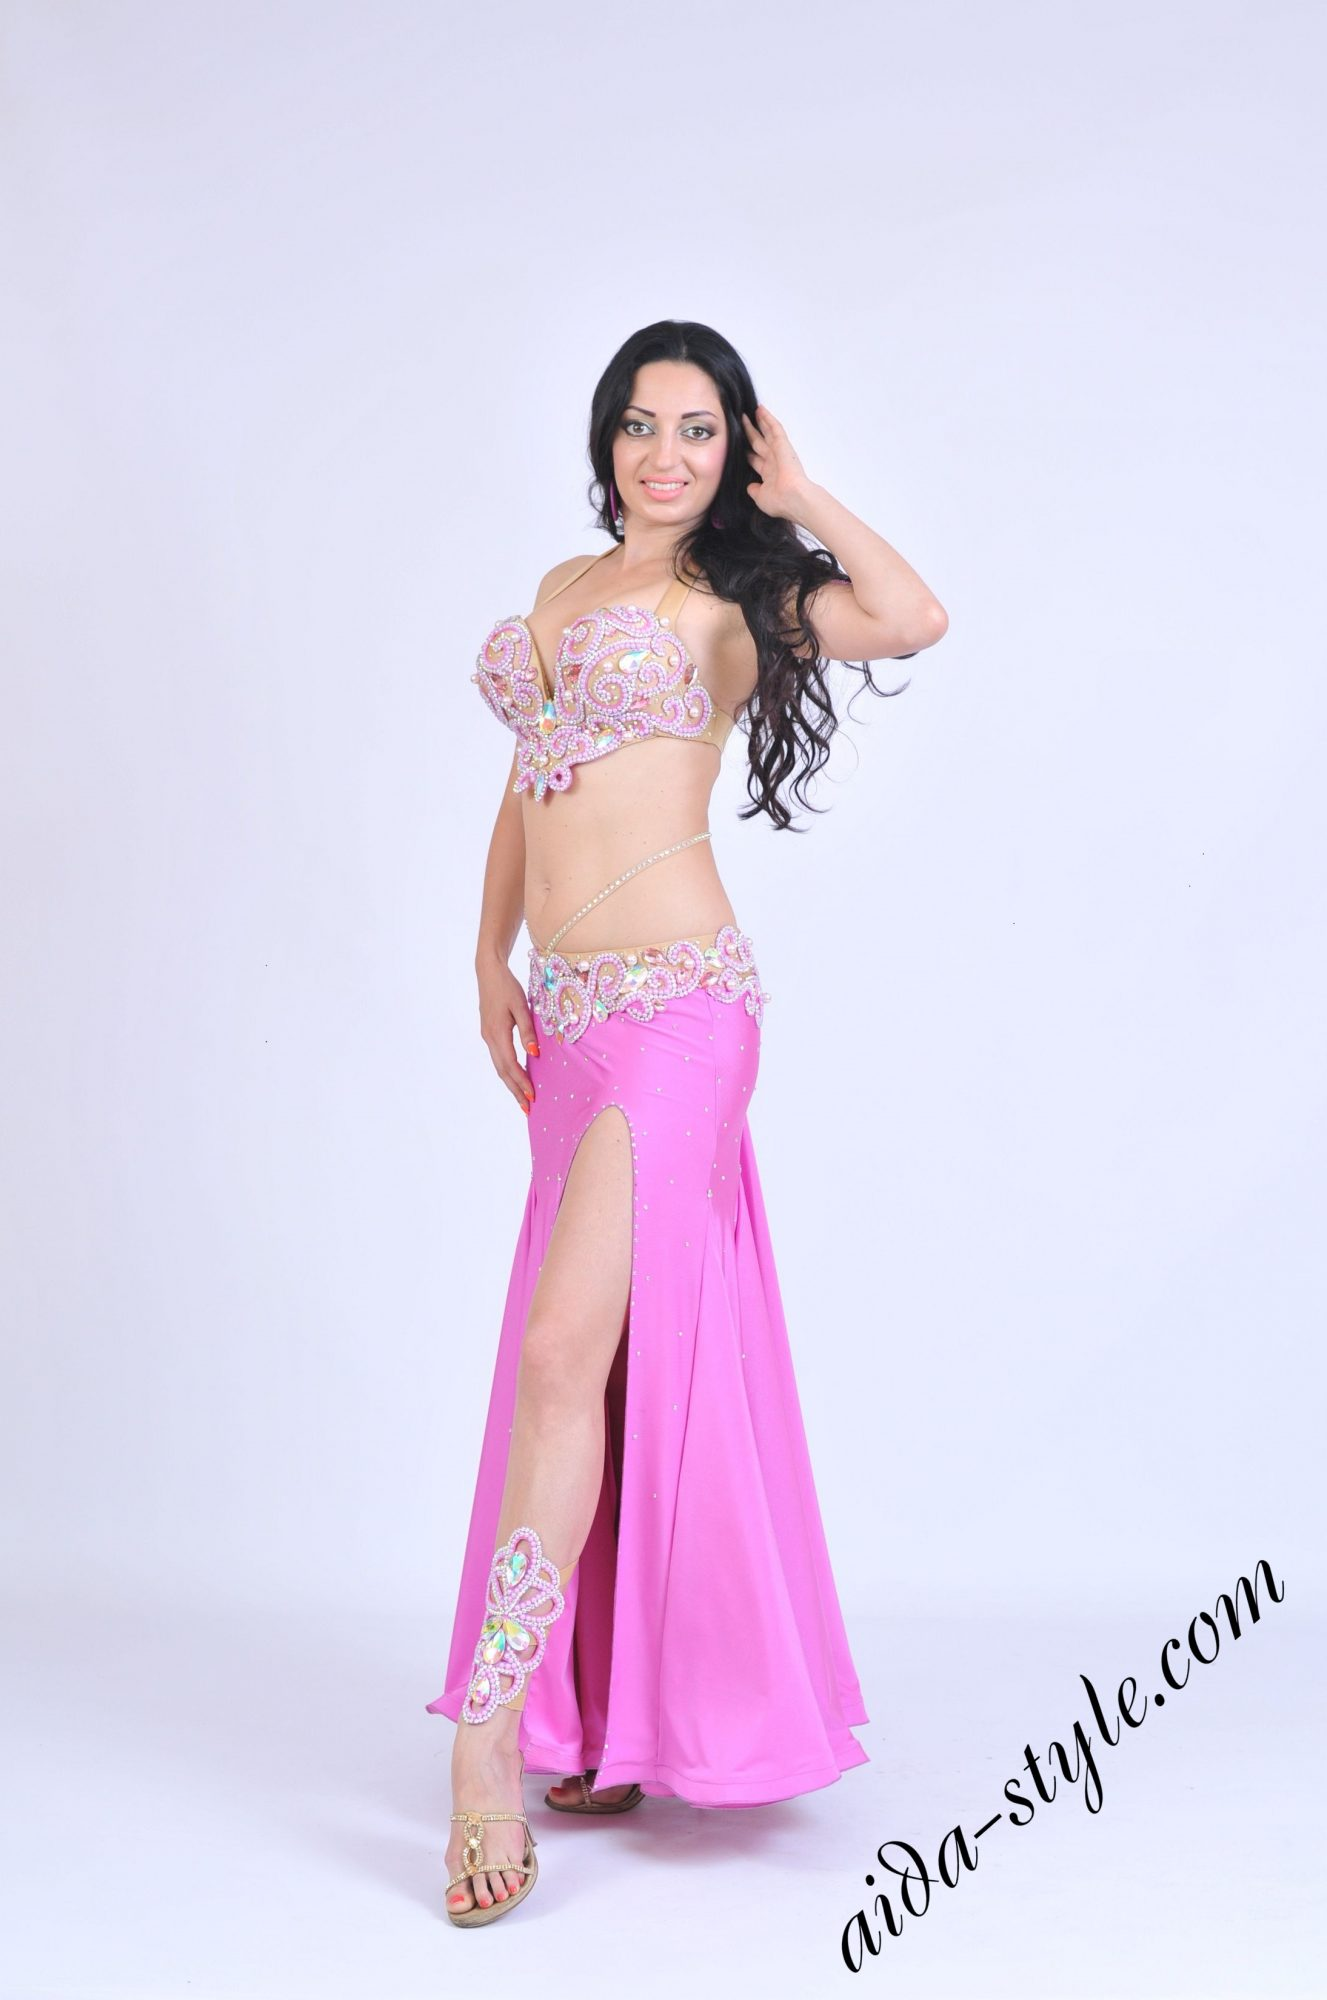 Belly dance outfit by Olga Aida with mermaid skirt